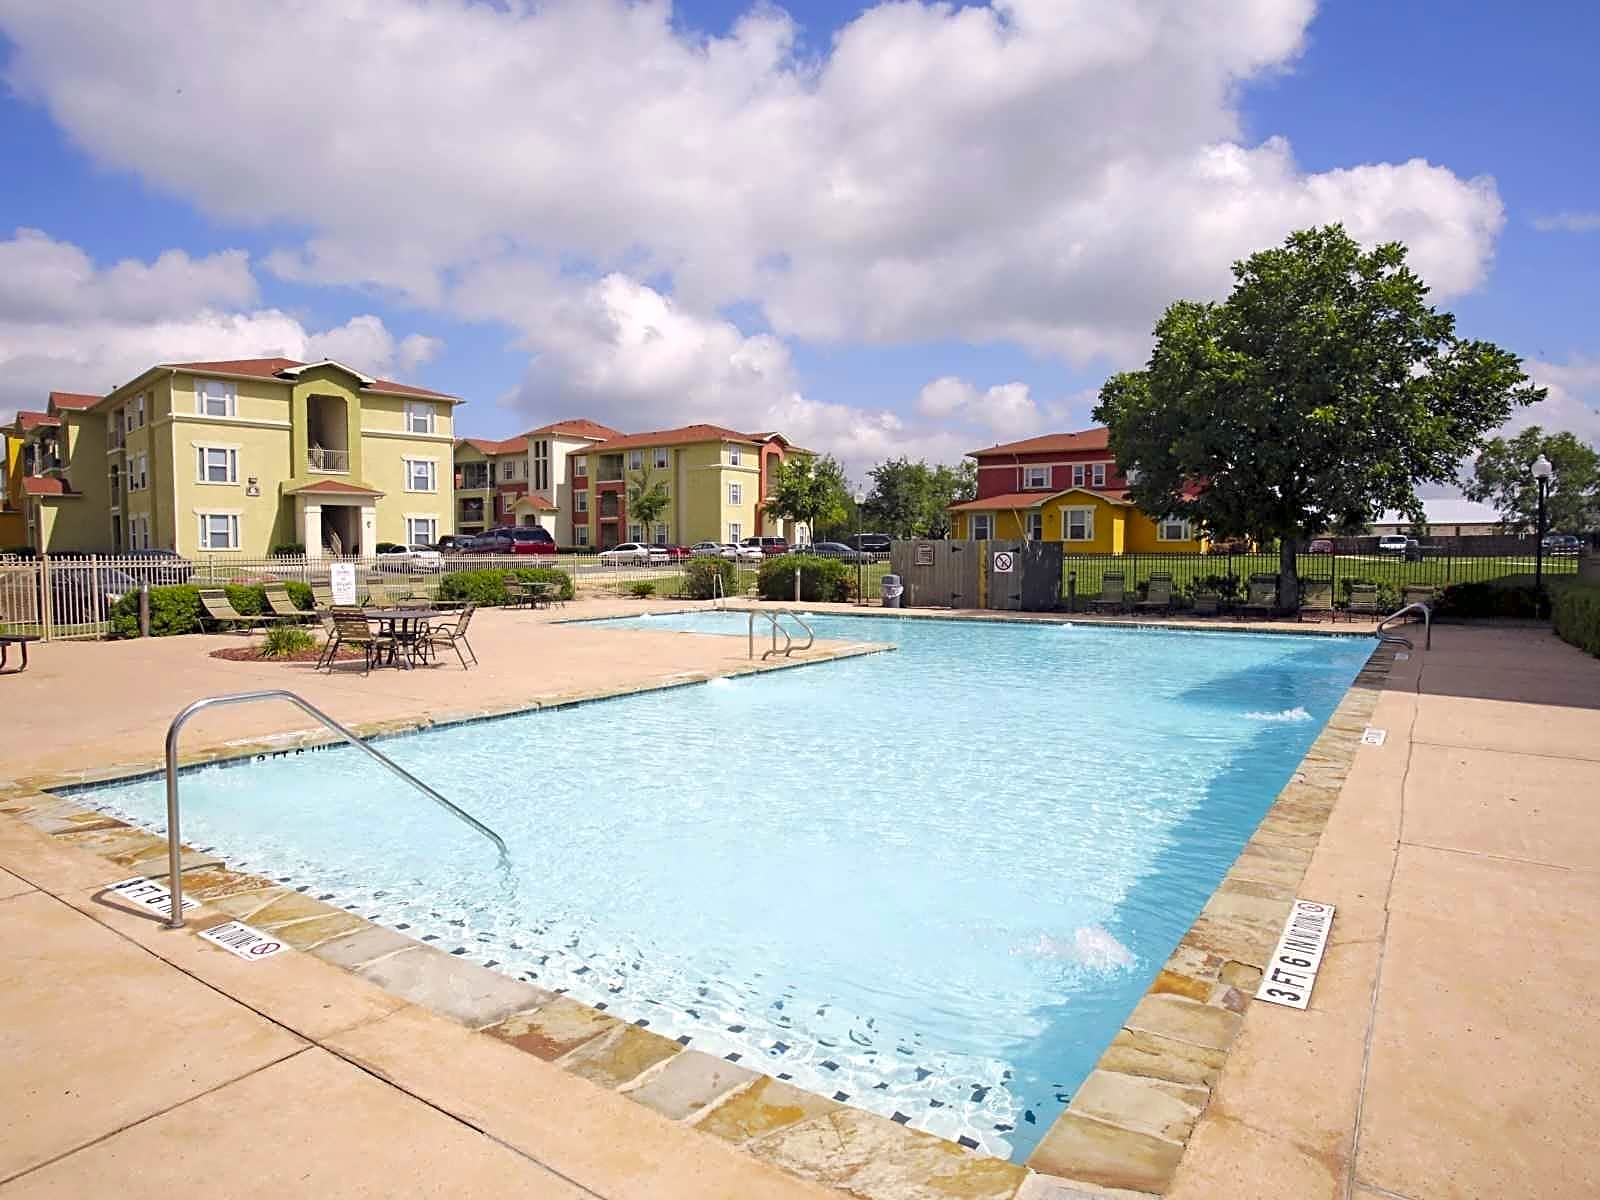 Photo: San Antonio Apartment for Rent - $716.00 / month; 3 Bd & 2 Ba